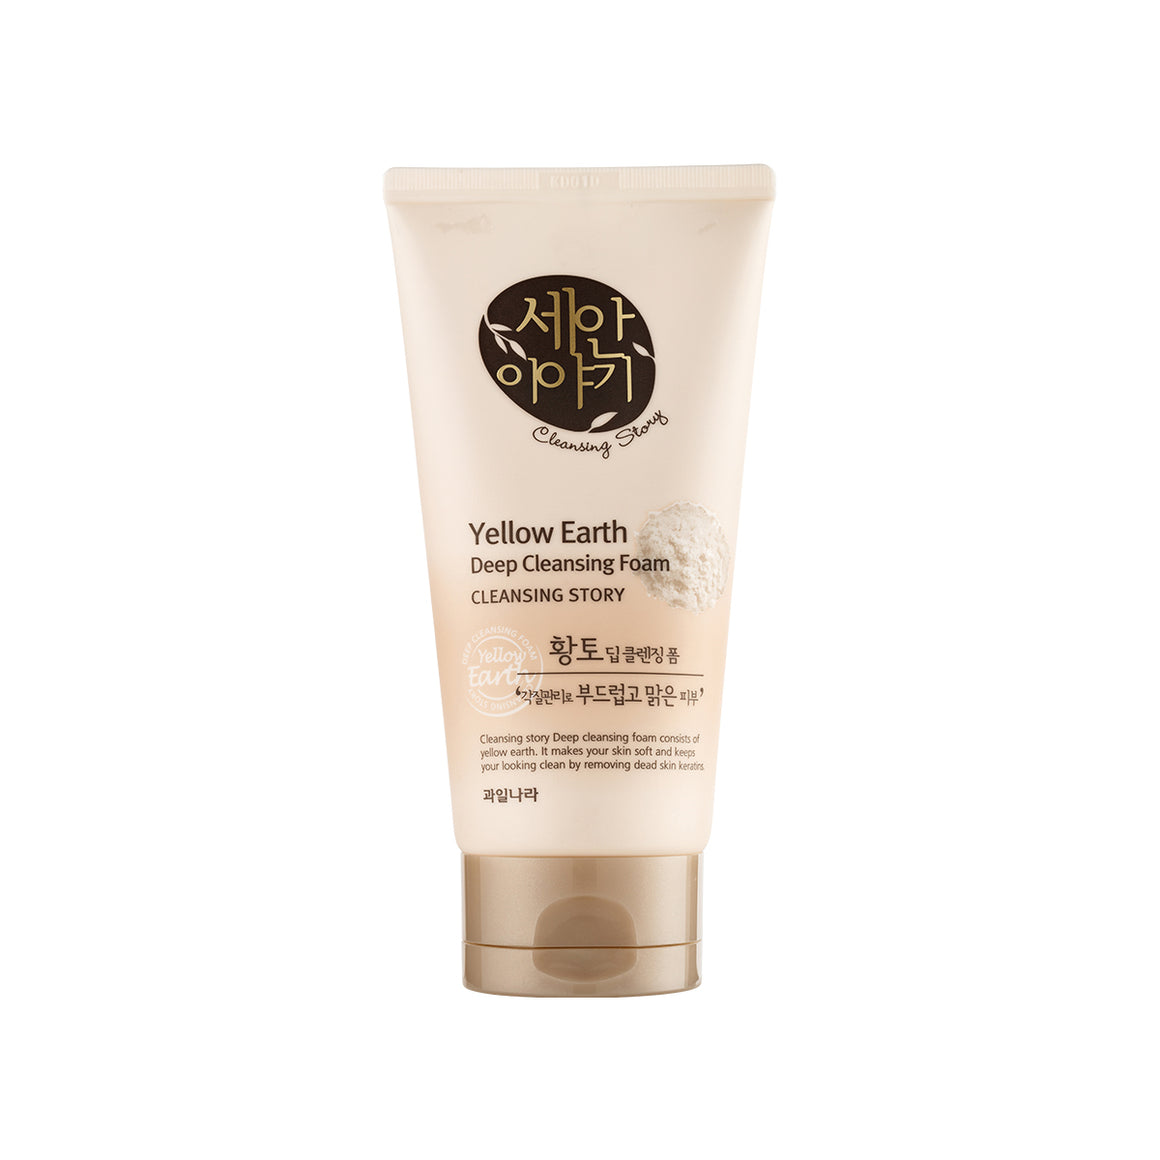 Yellow Earth Cleansing Foam